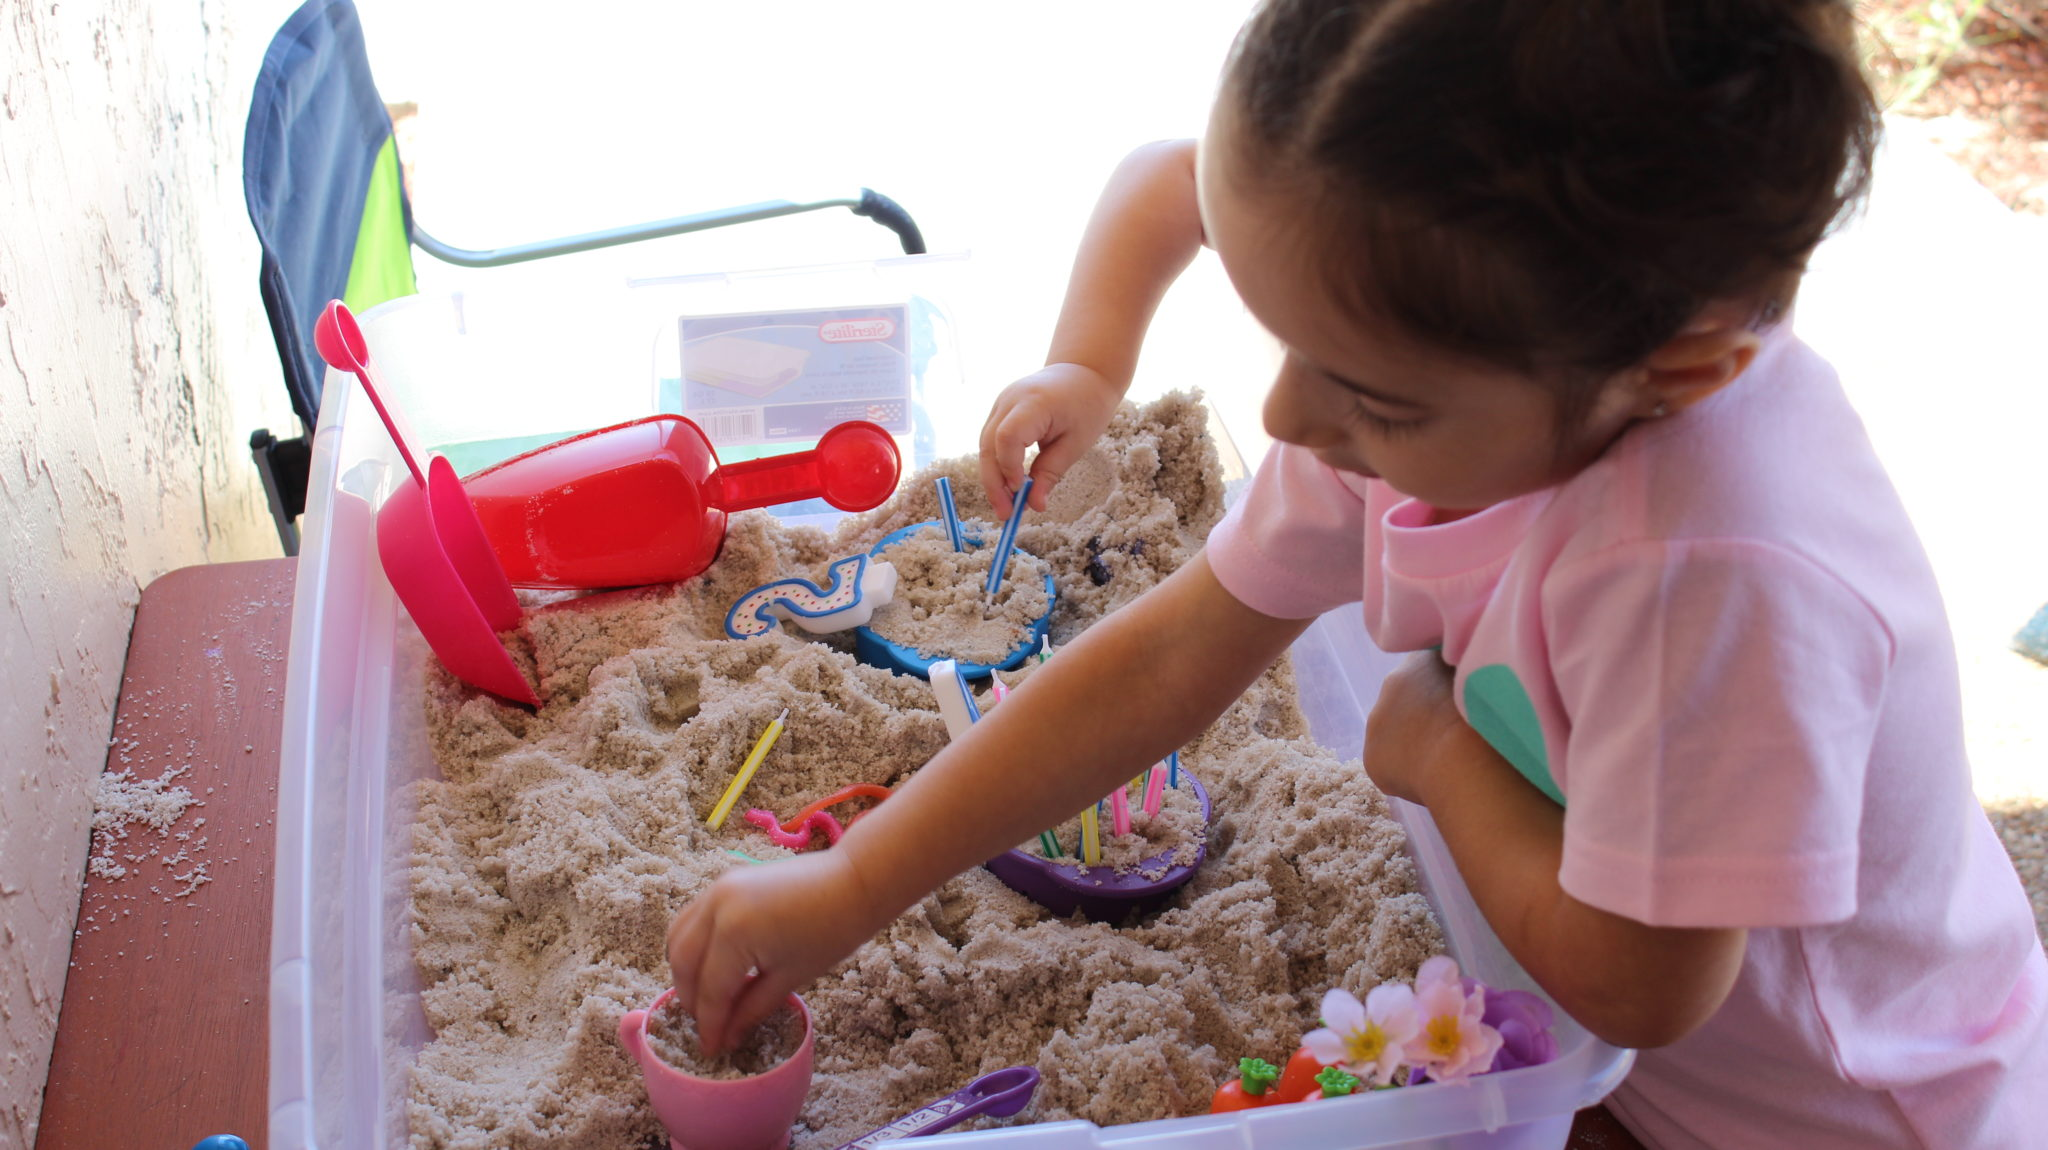 Birthday Theme Sensory Bin for Toddlers